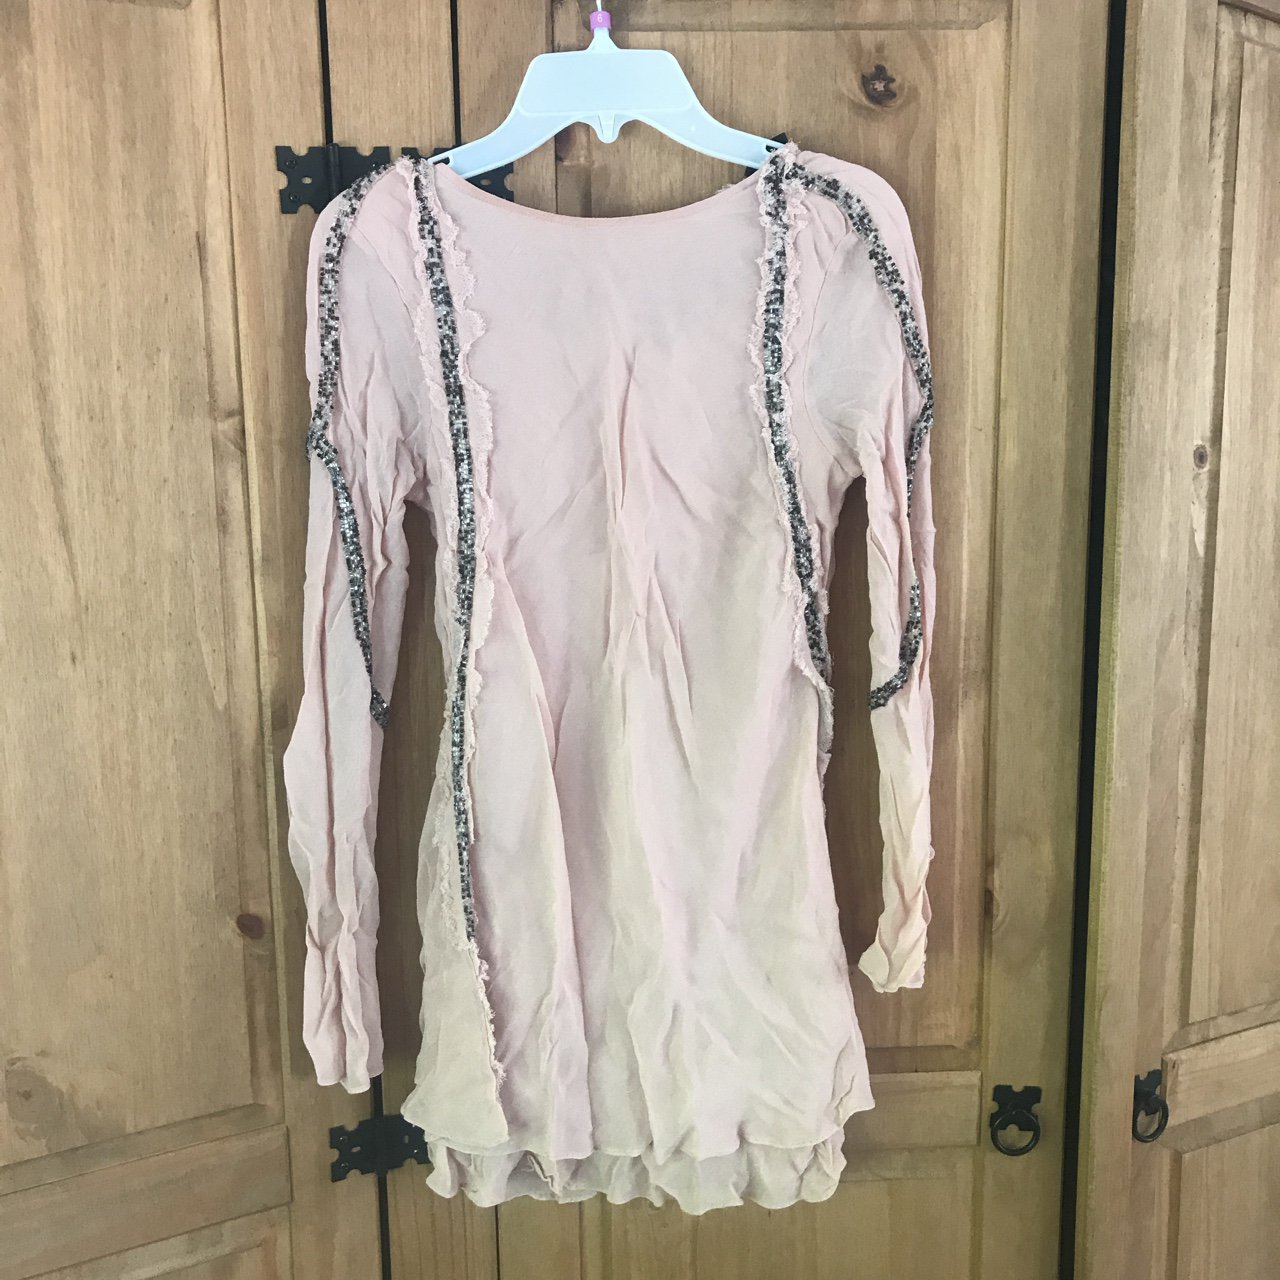 219f5584a8b5e Topshop nude sheer top with